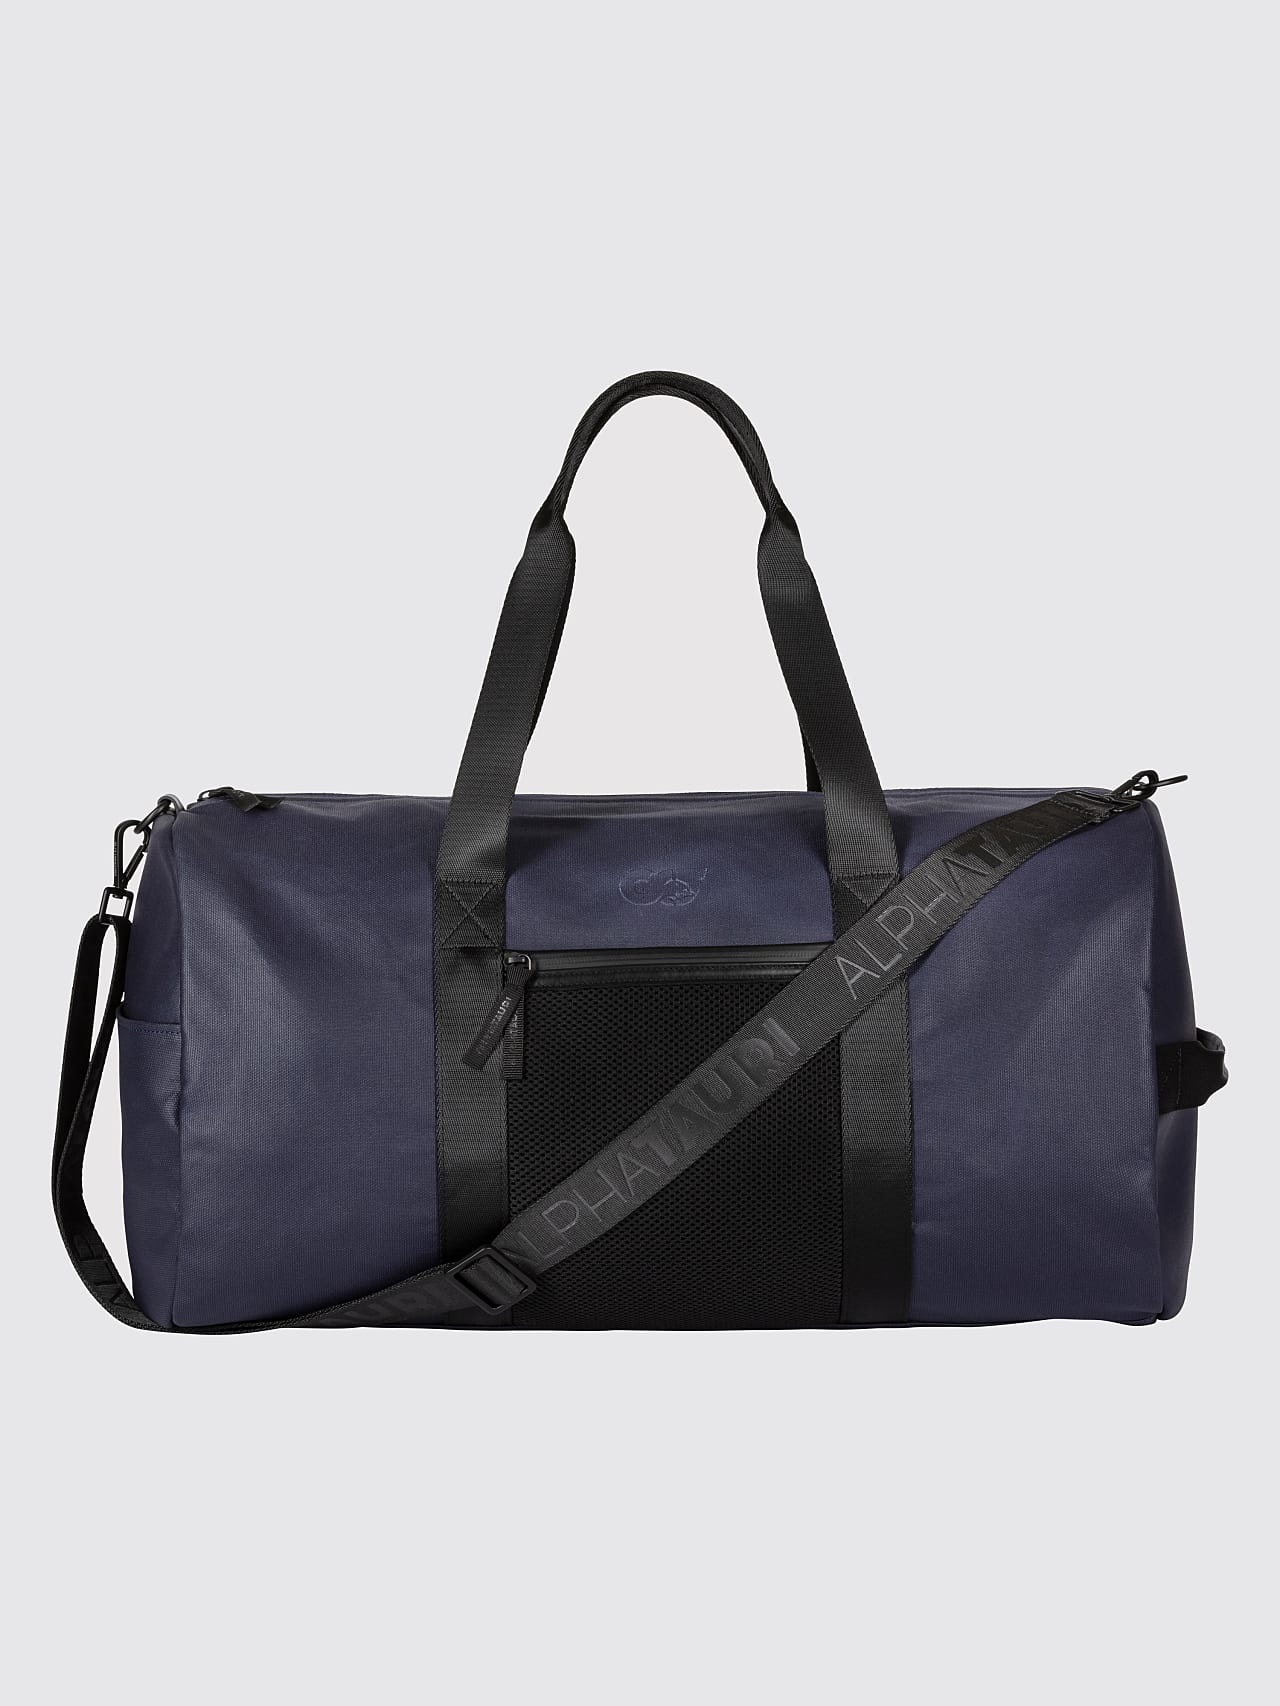 AWEE V3.Y5.01 Water-Resistant Duffle Bag navy Front Alpha Tauri